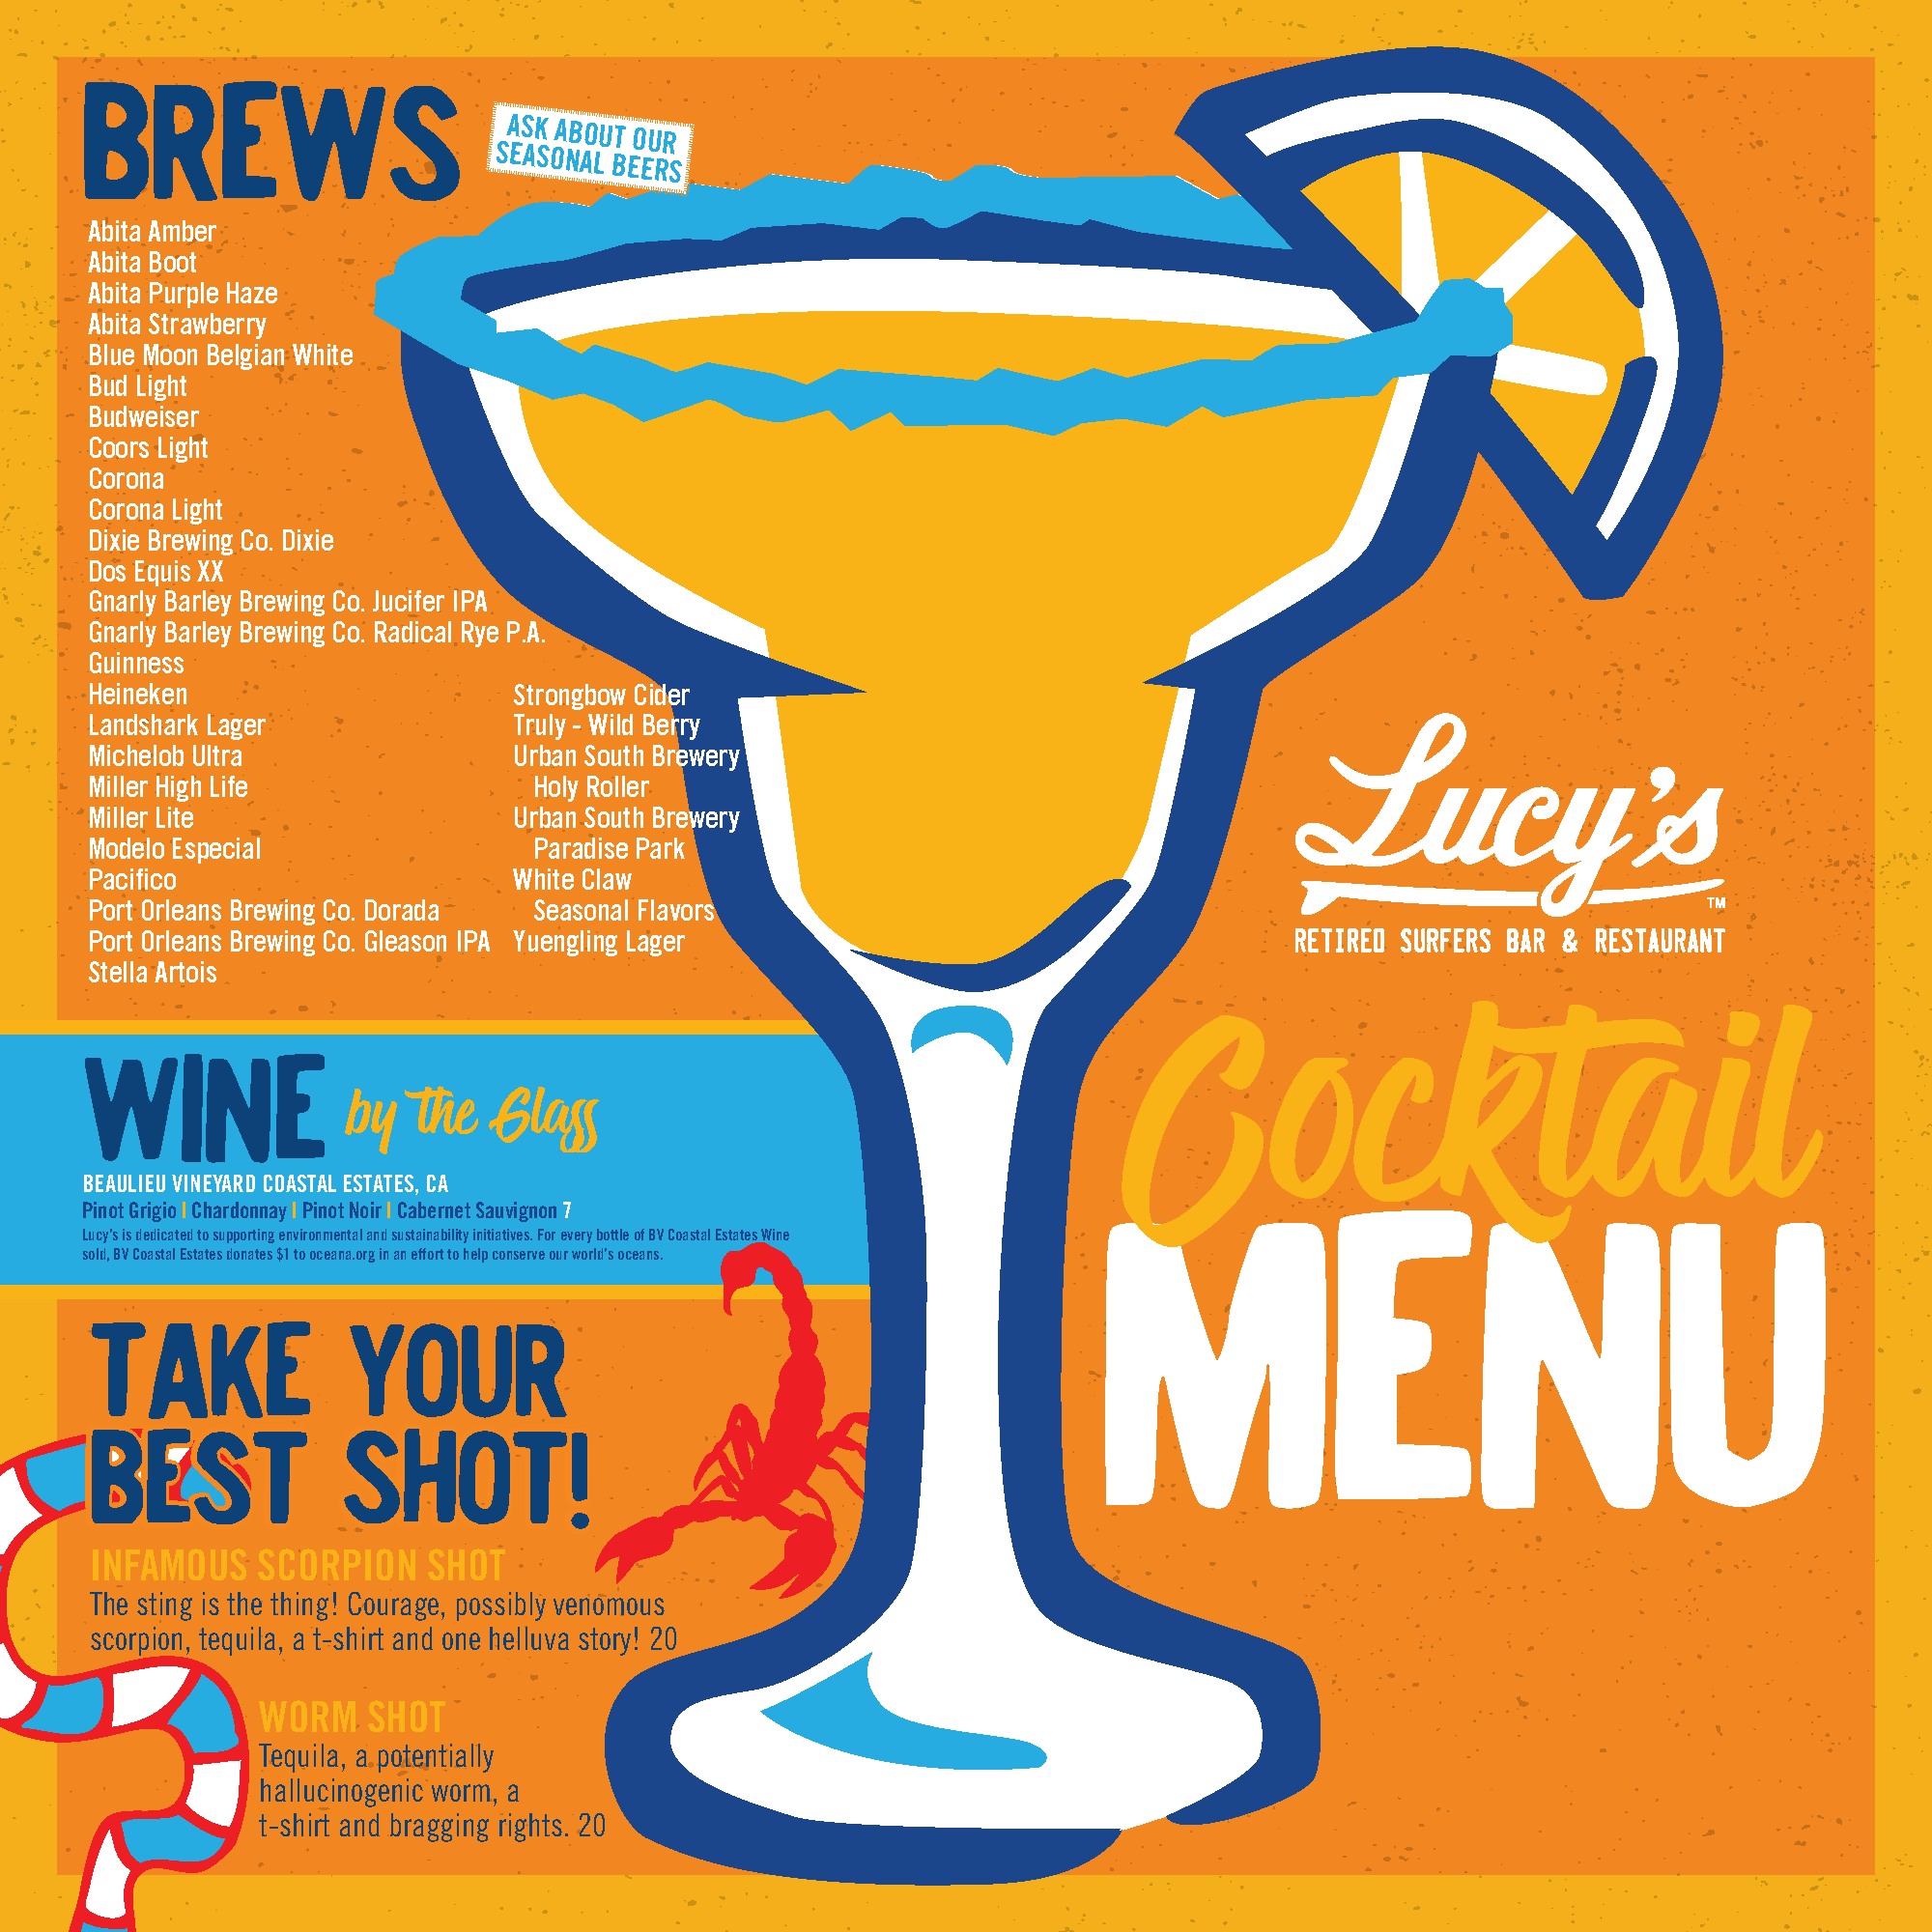 Lucy's Cocktail Menu - Page 1